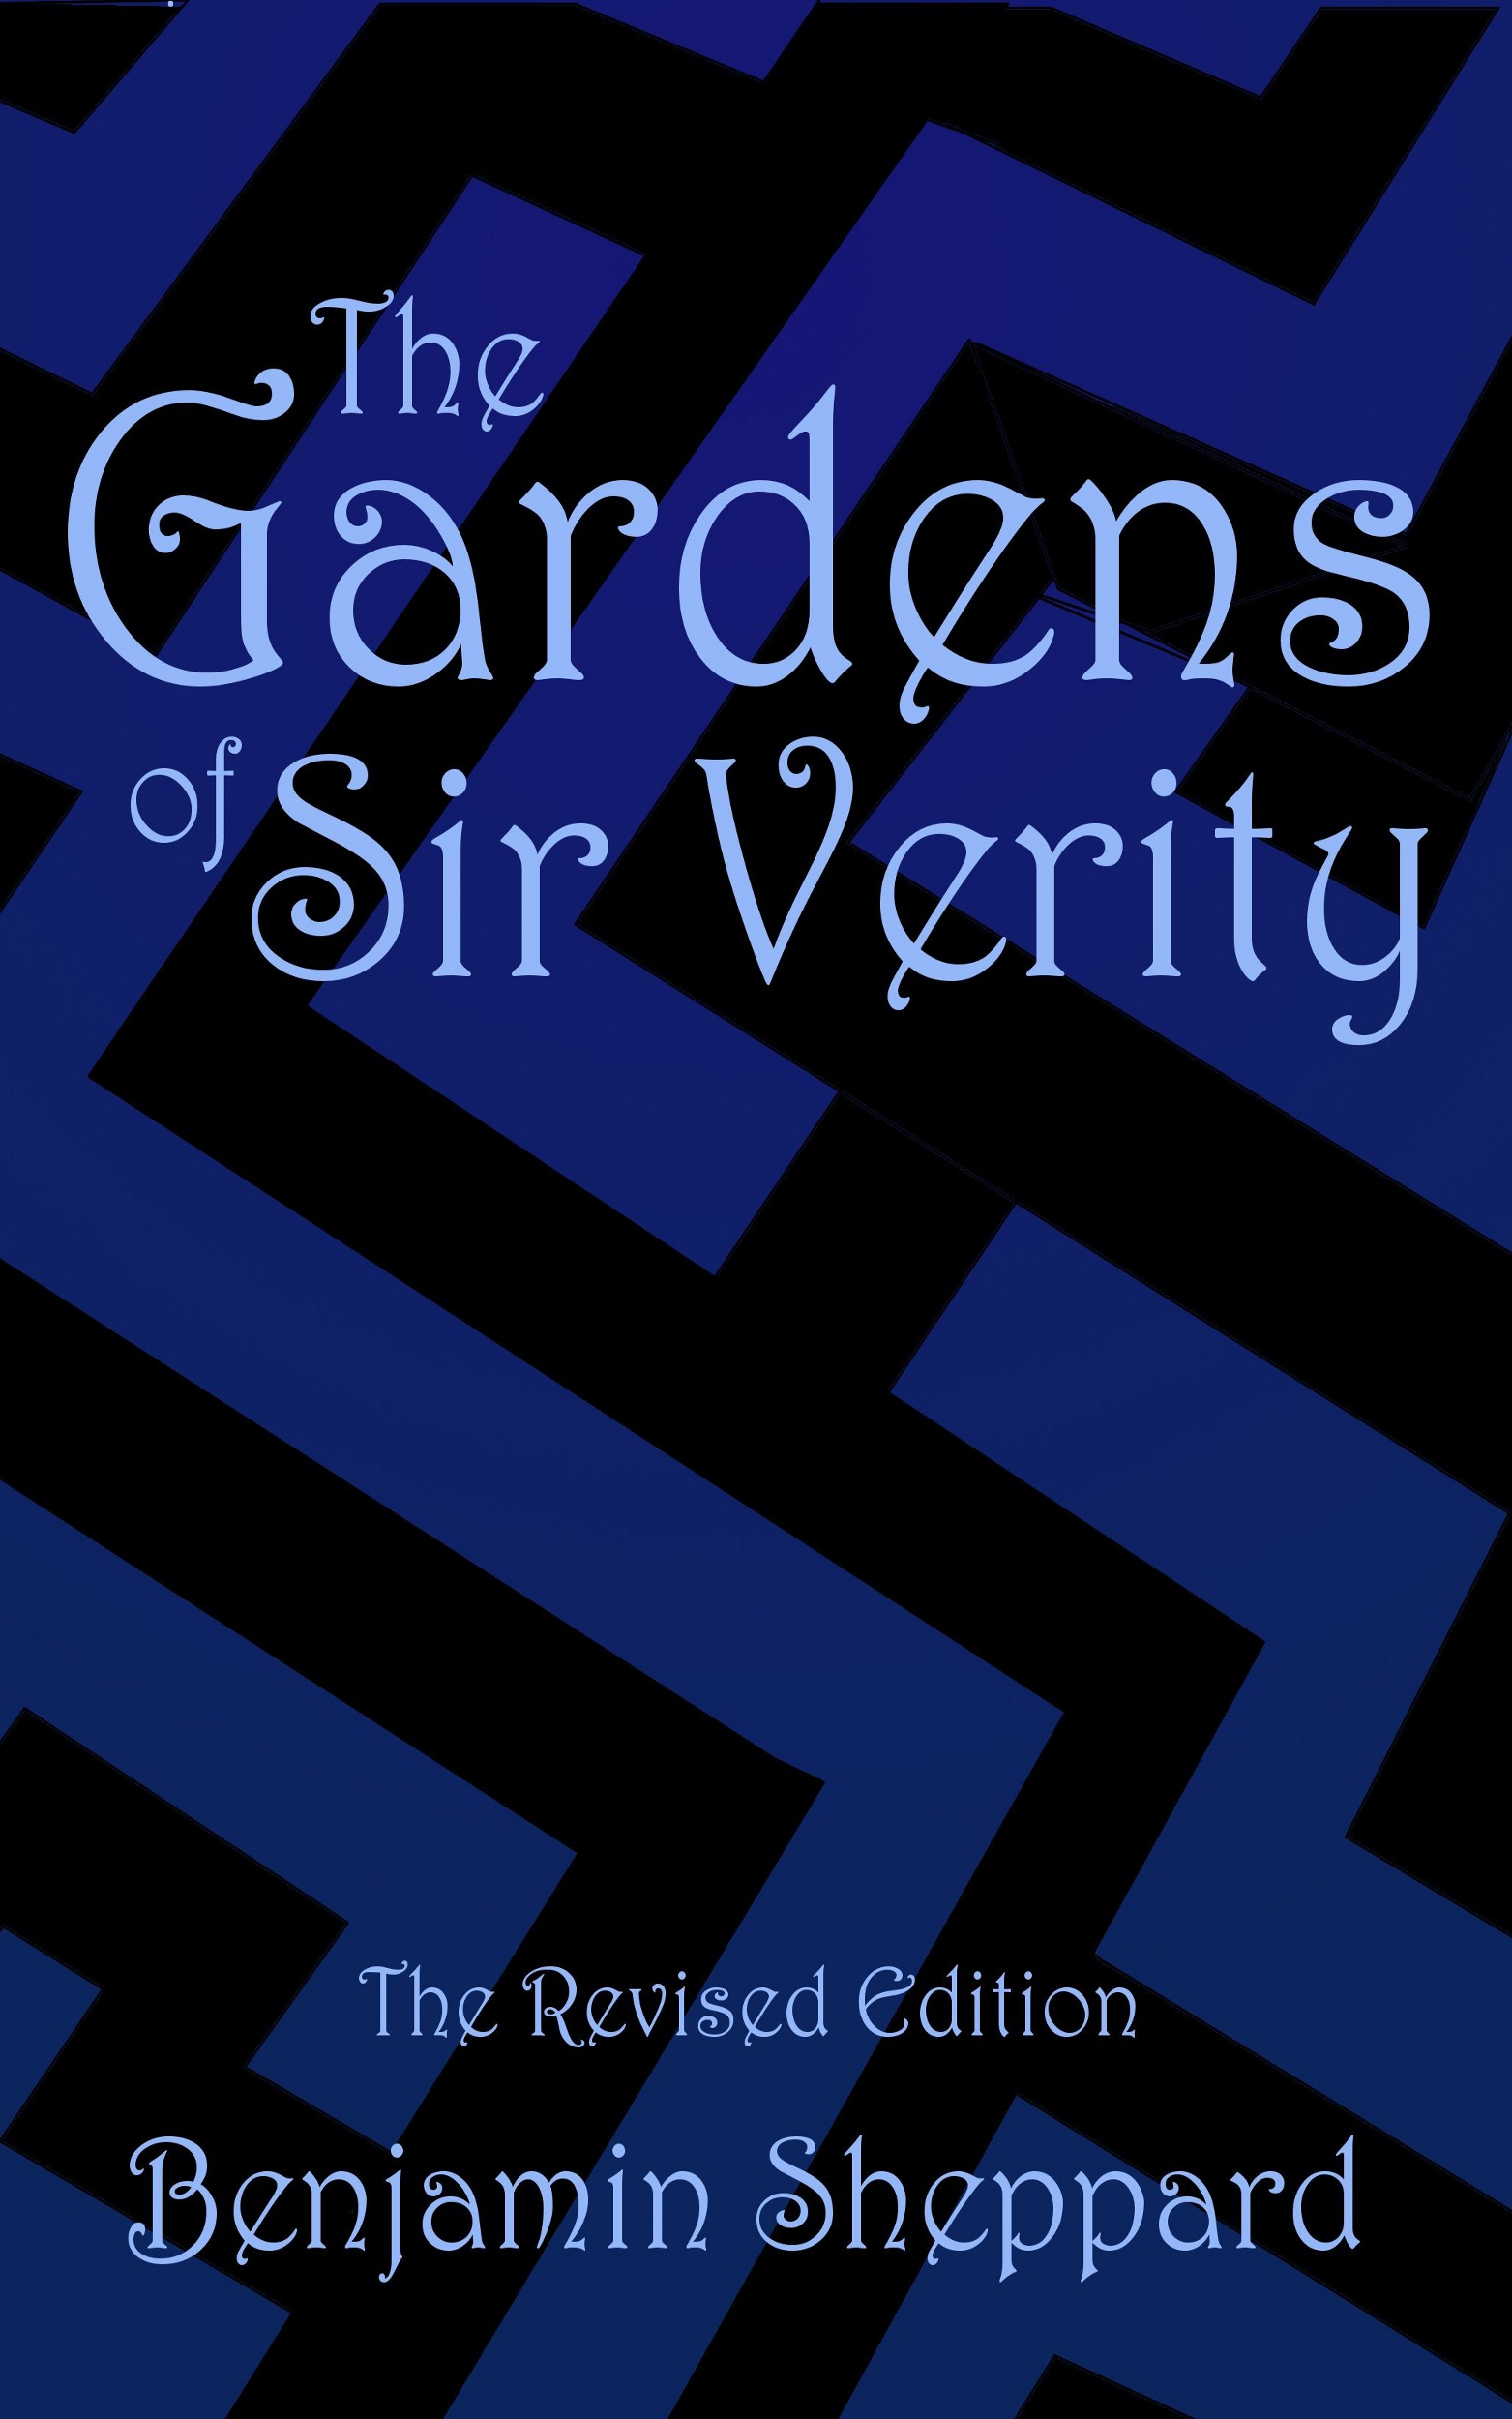 The Gardens of Sir Verity